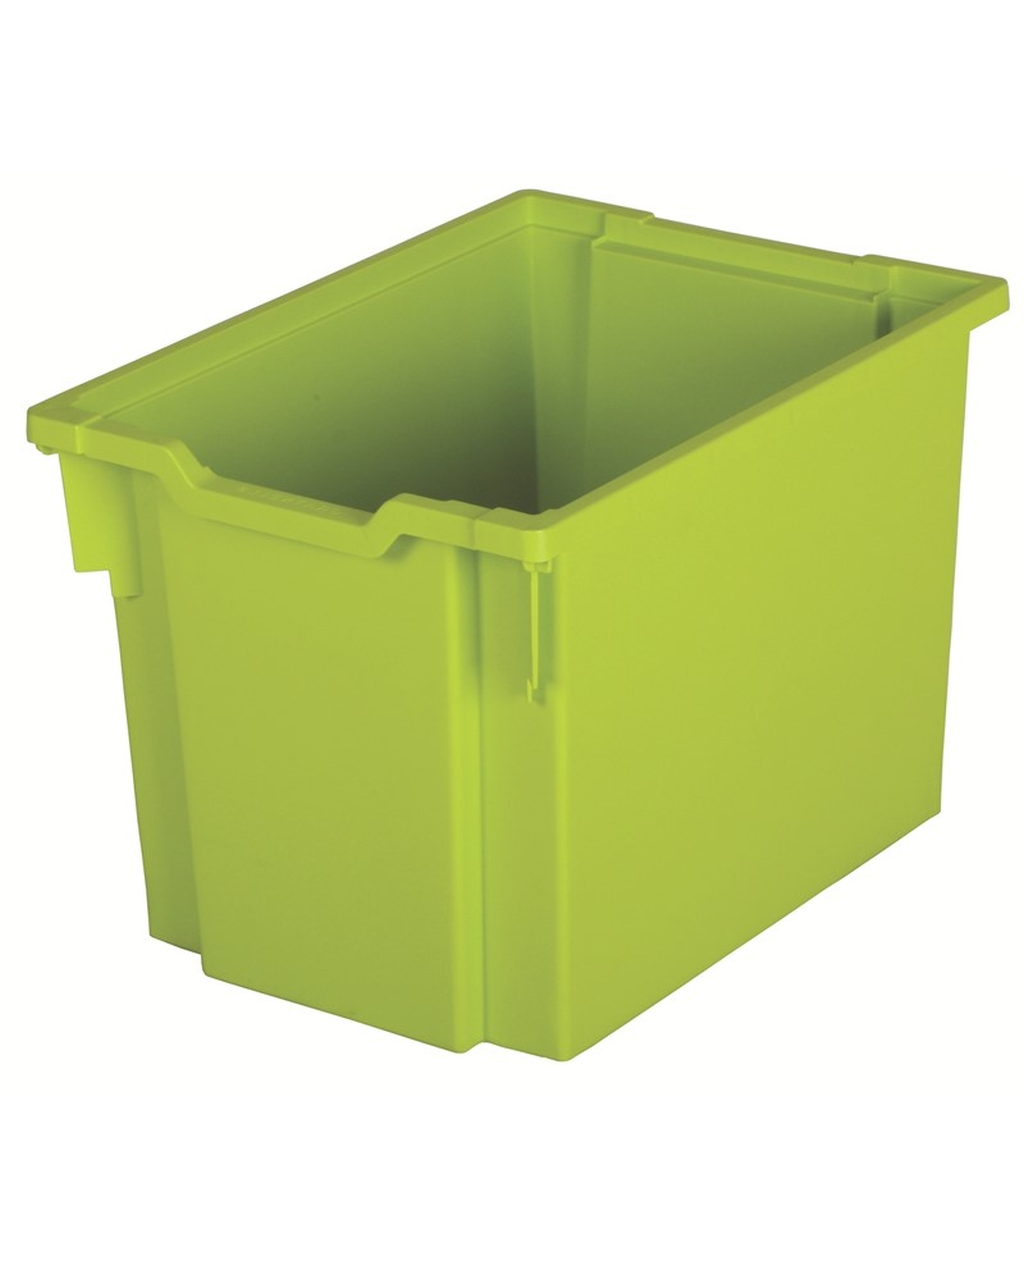 Gratnells Jumbo Tray - Lime Green